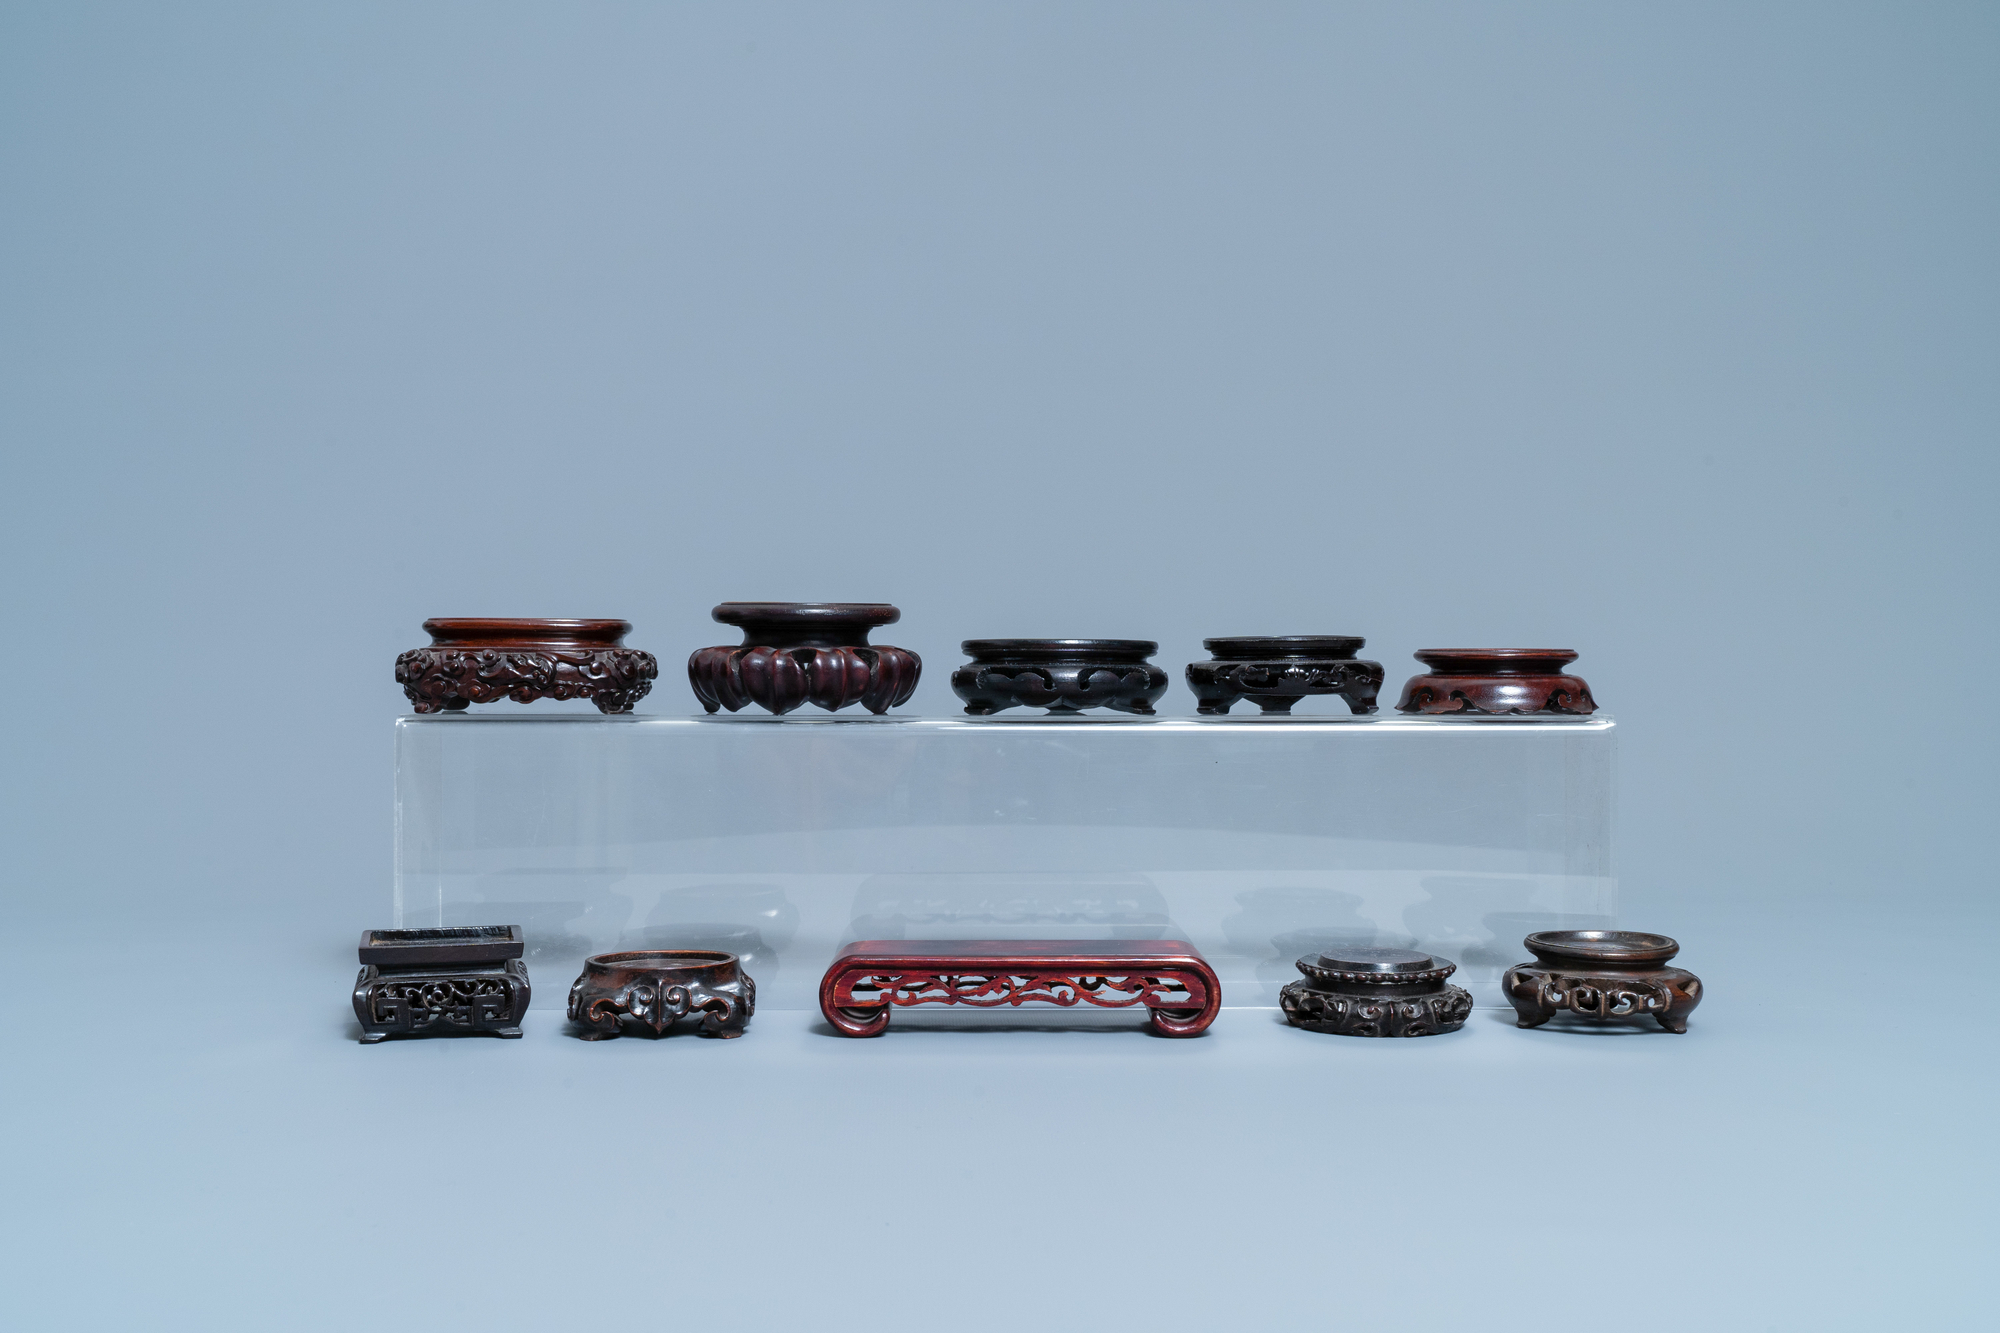 26 Chinese carved wooden stands, 19/20th C. - Image 9 of 12